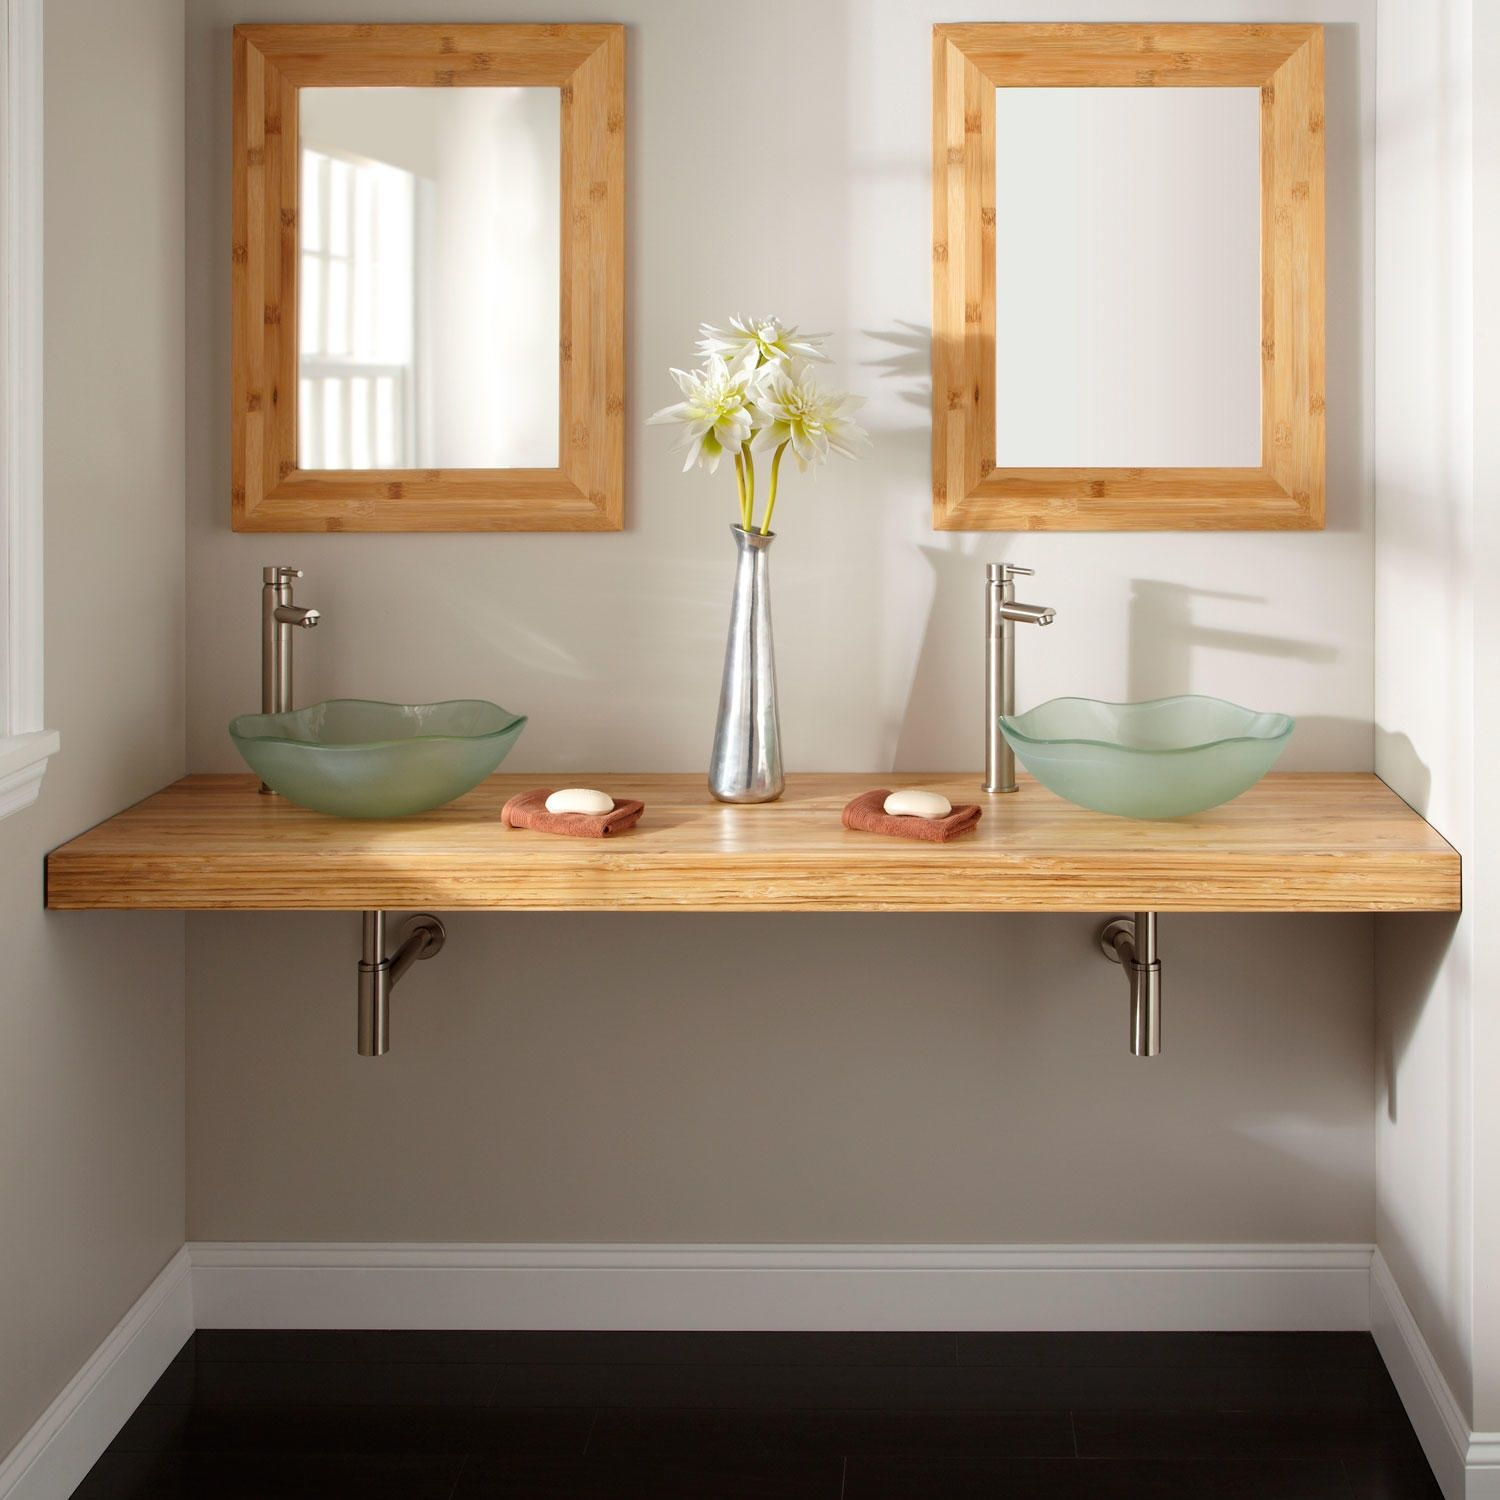 Custom Bathroom Vanities Michigan diy-custom-floating-bathroom-vanity-design-in-solid-natural-bamboo